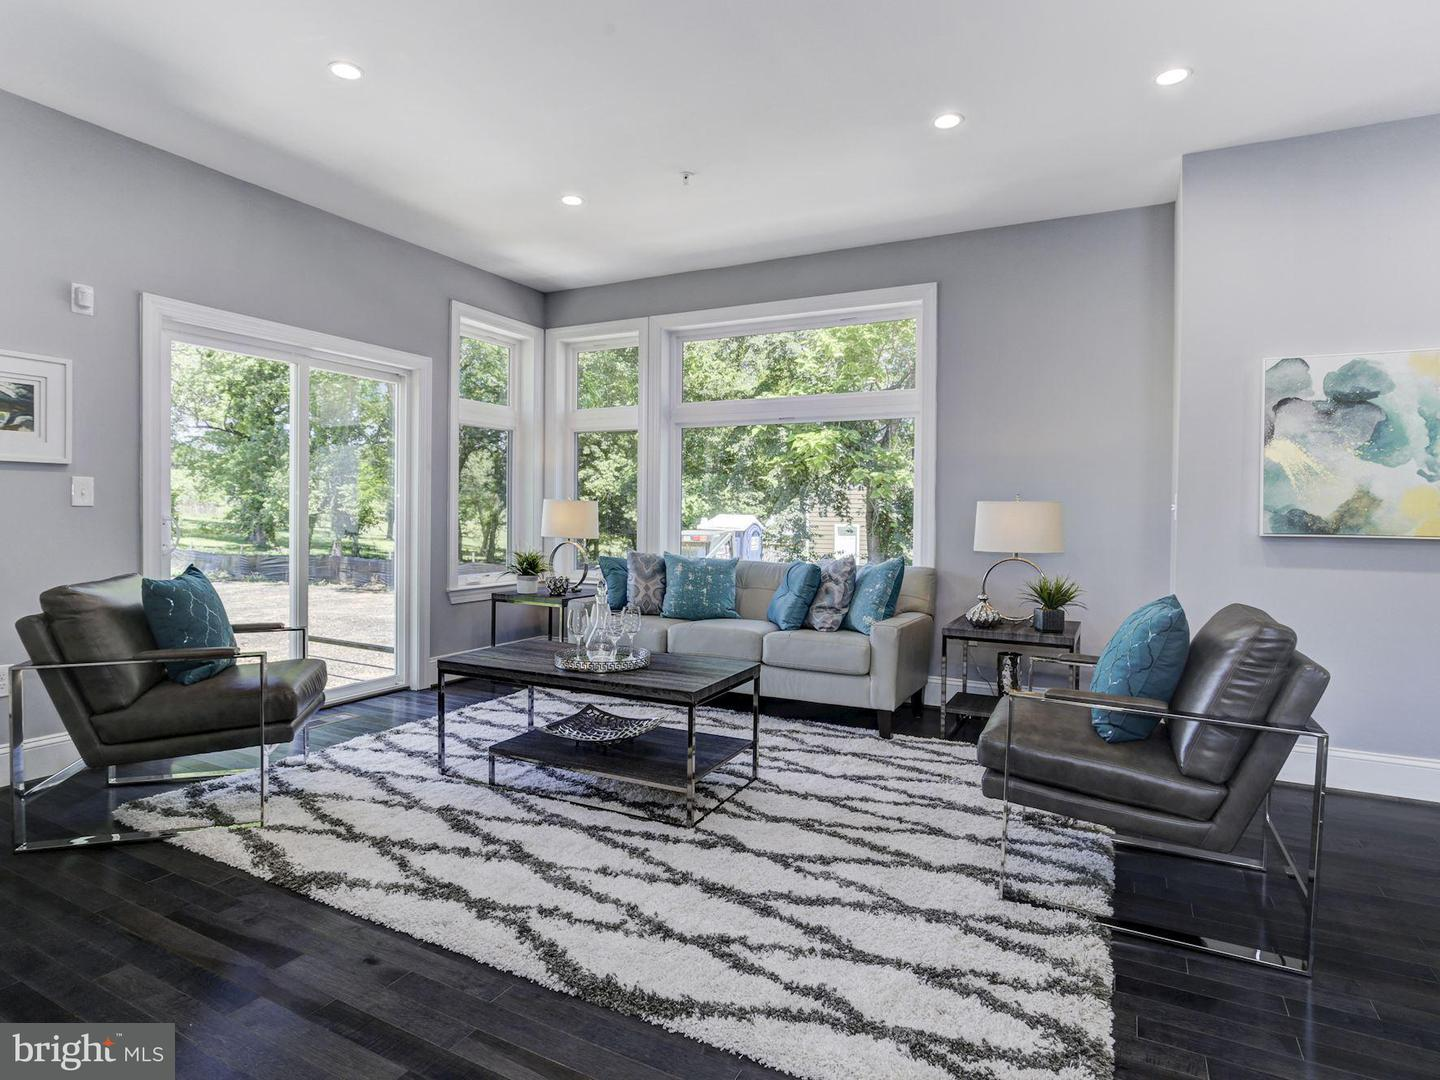 Single Family for Sale at 3722 30th Pl NE Washington, District Of Columbia 20018 United States